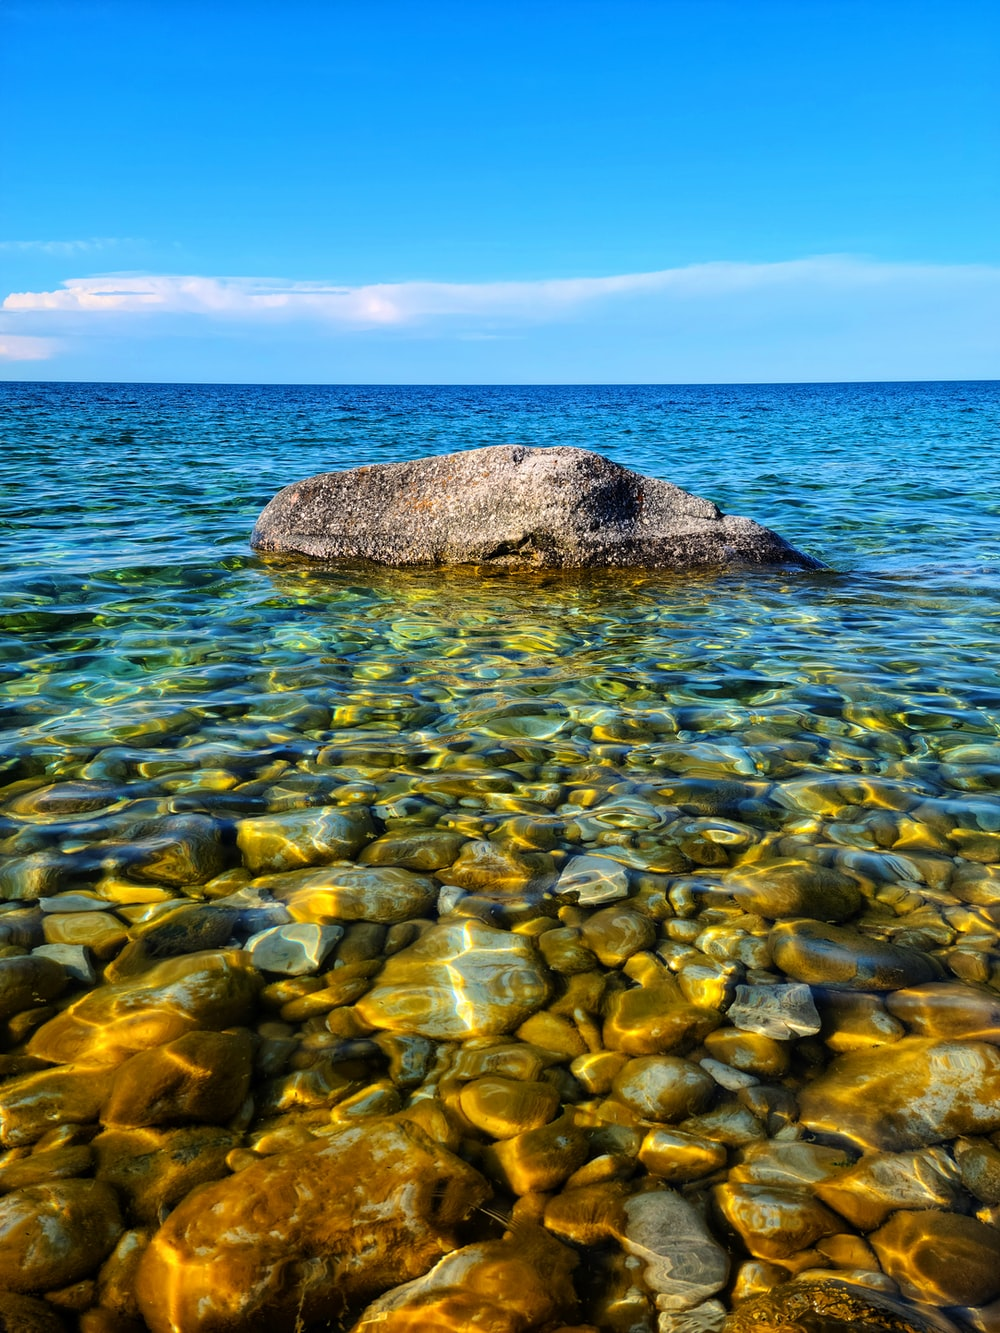 brown rock on body of water during daytime